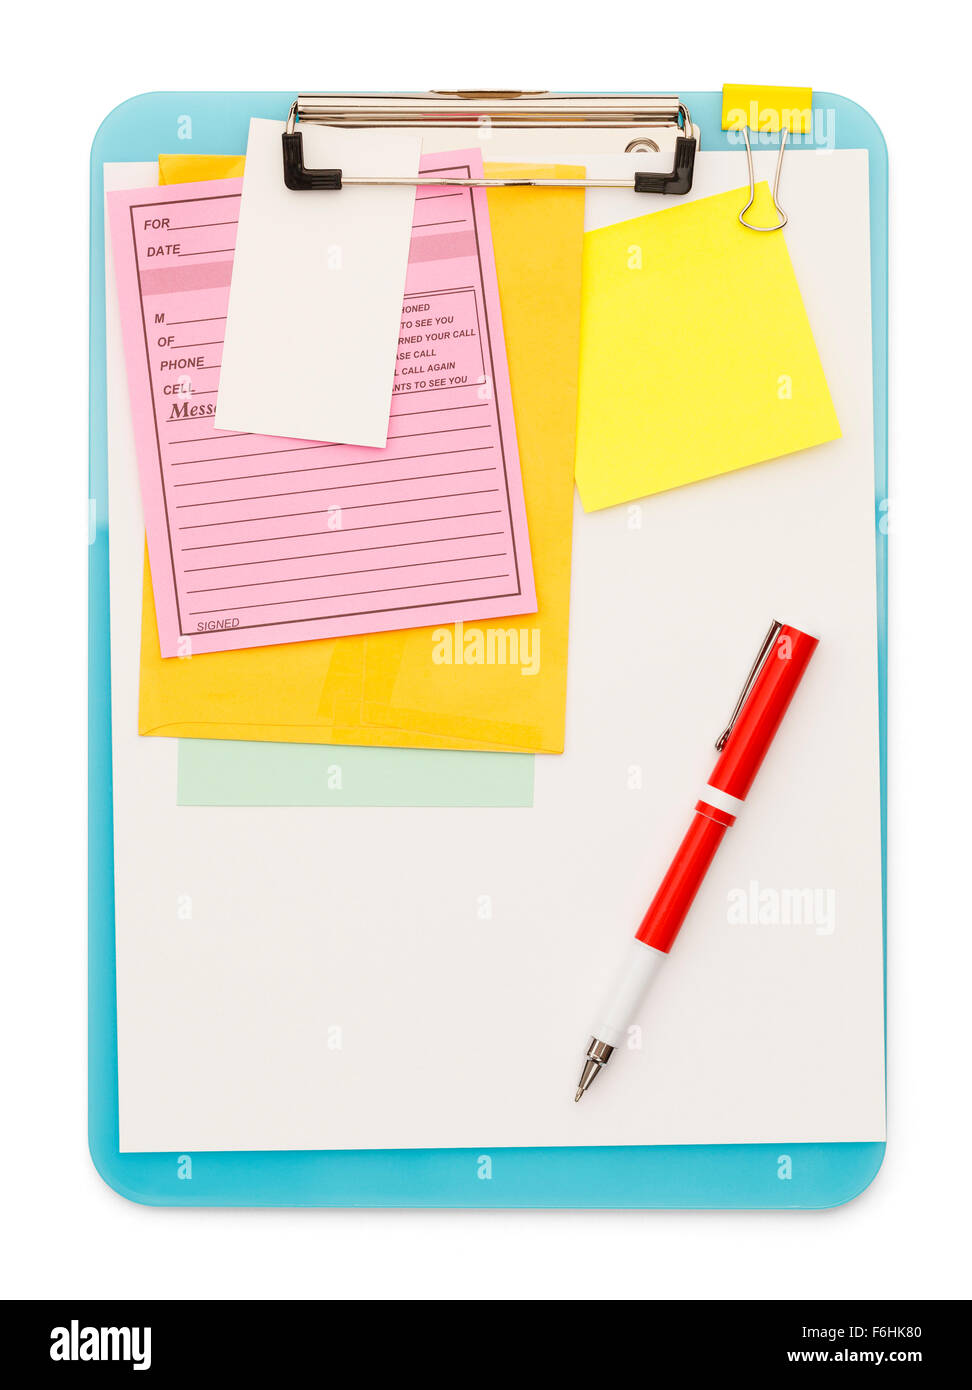 Clipboard and Notes with Pen Isolated on a White Background. - Stock Image